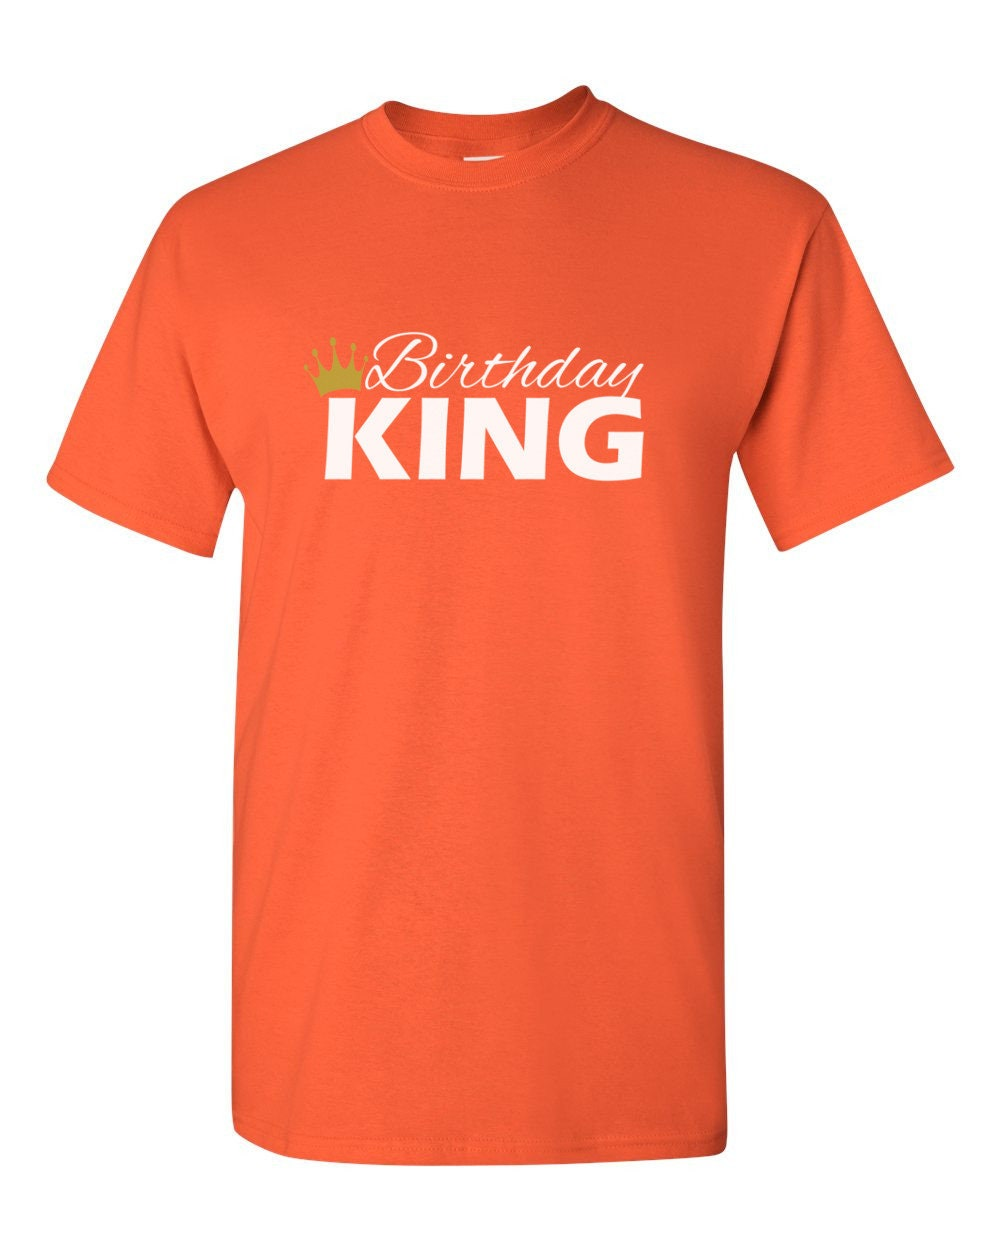 928b6ee15d8f0 Birthday King Shirt - Bday T-Shirt - Gift For Him - Funny Party ...